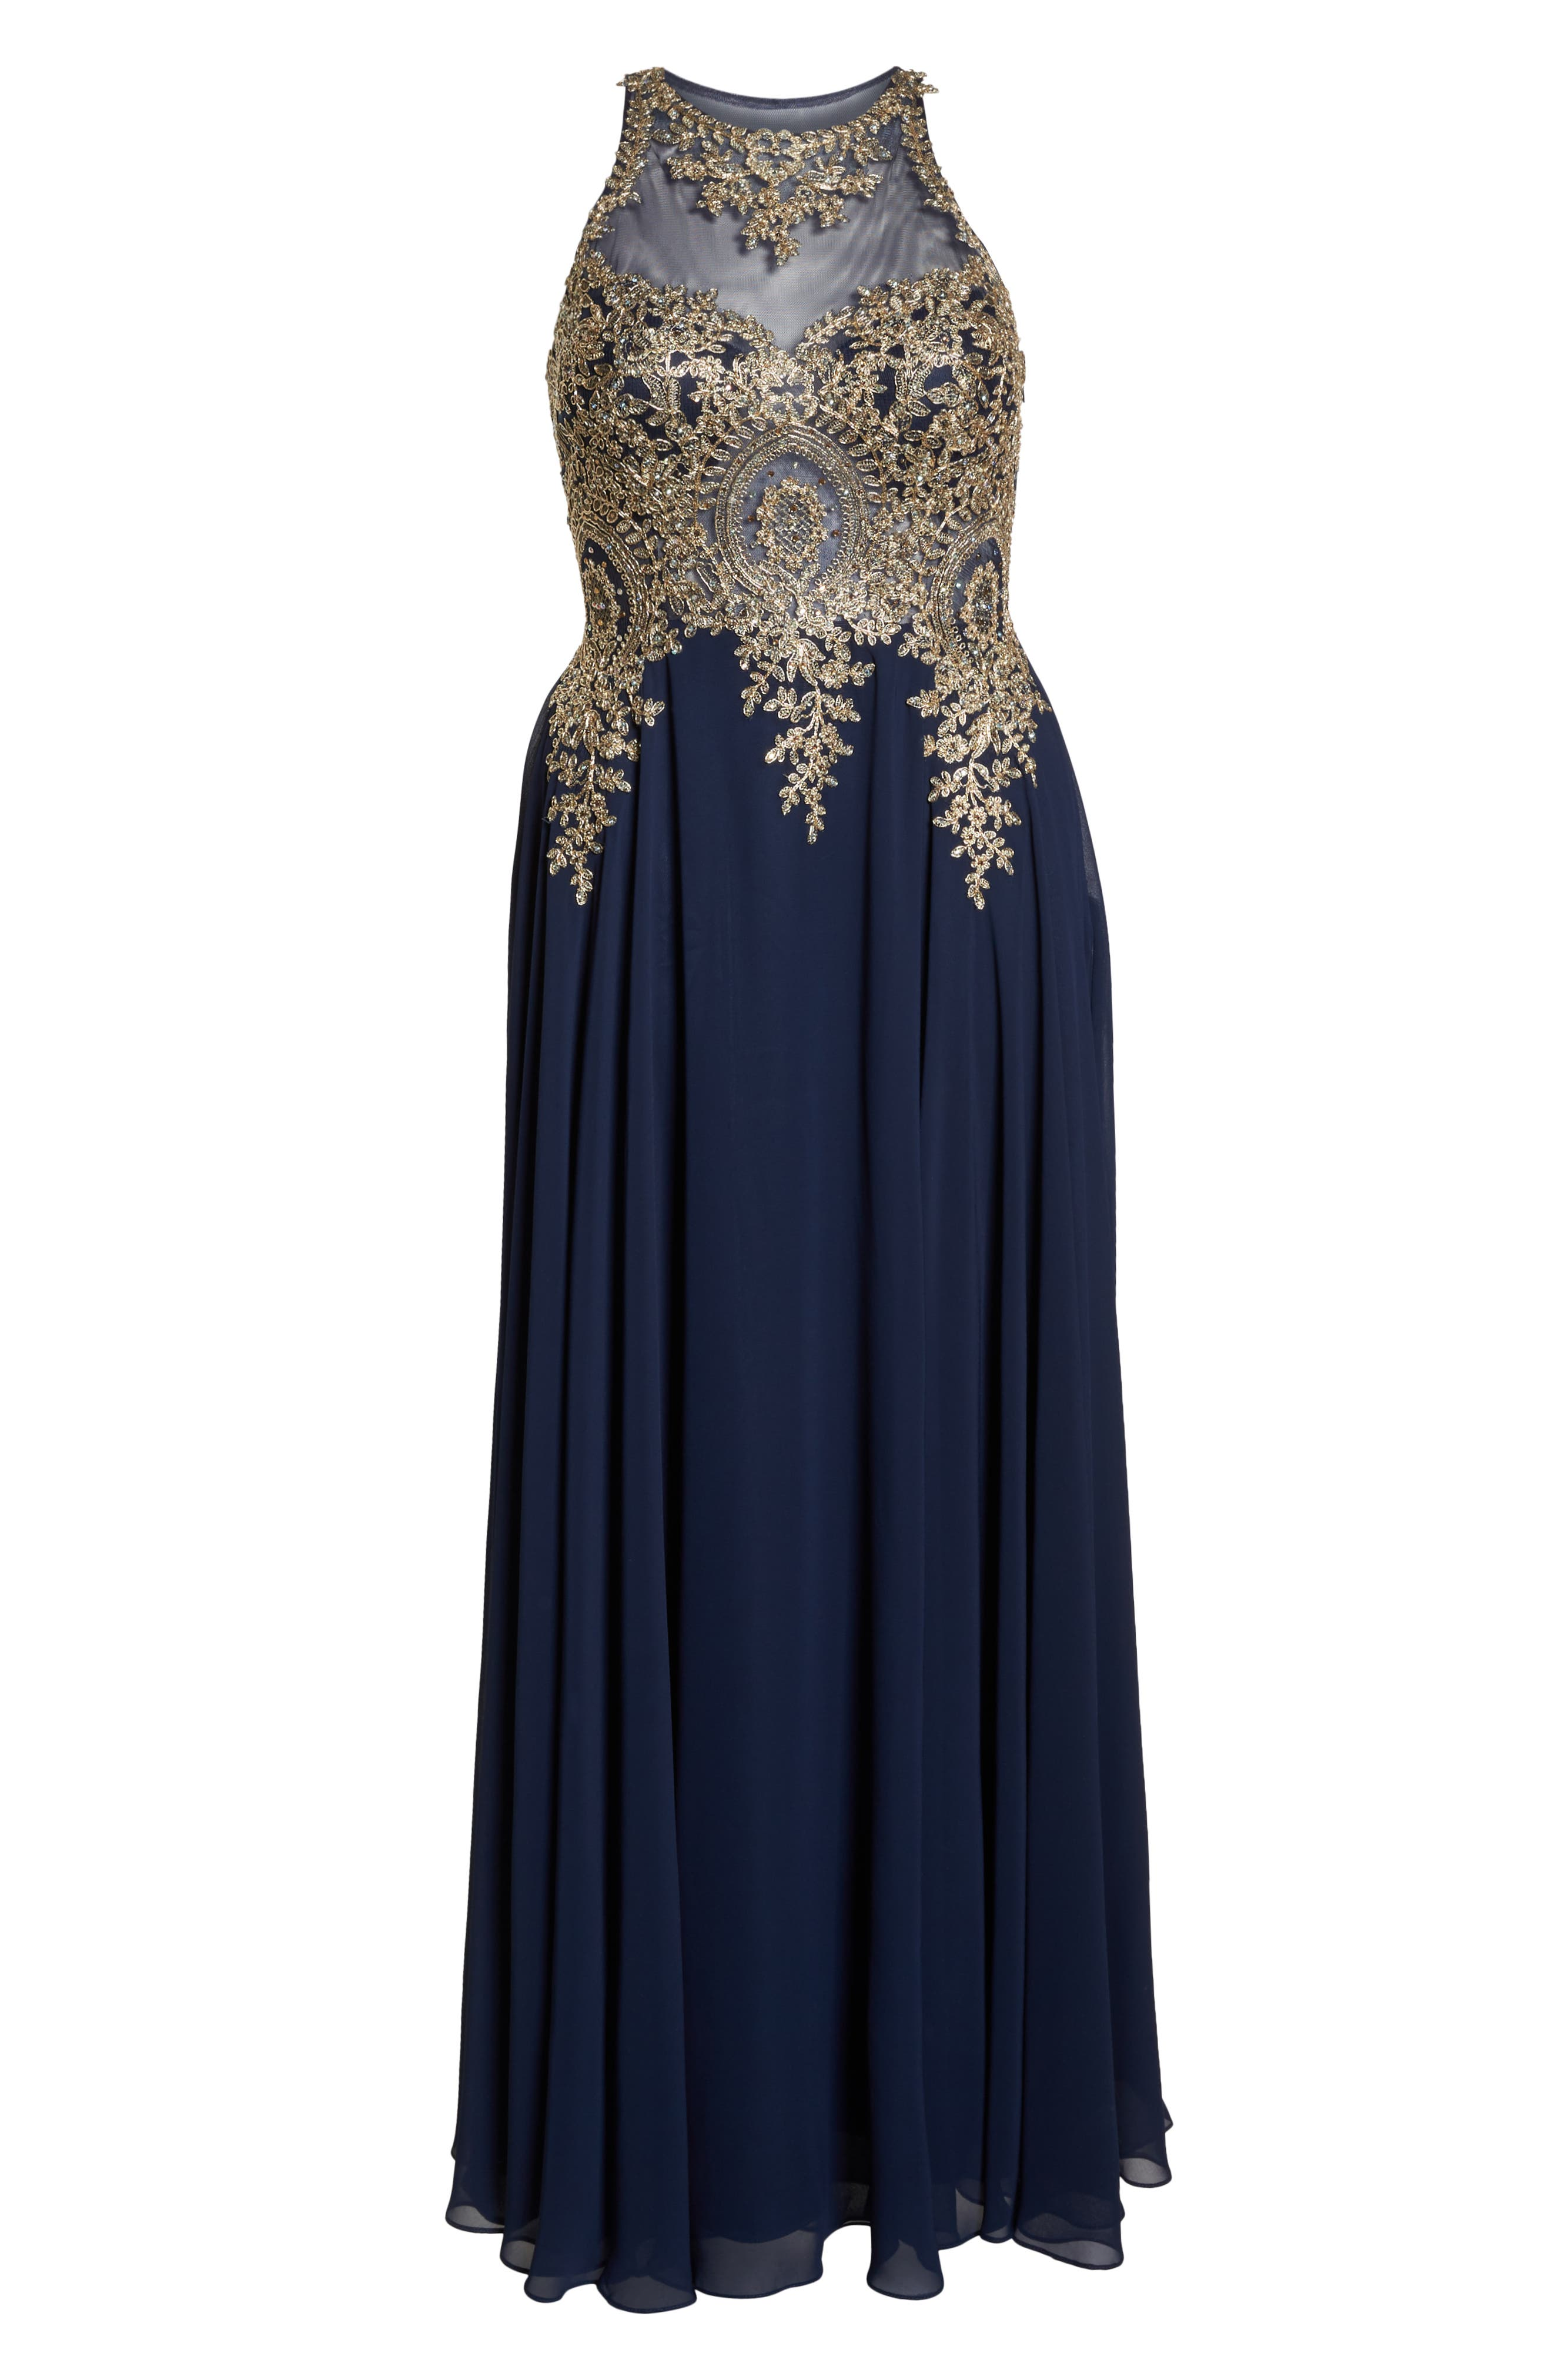 Metallic Embroidered Gown,                             Alternate thumbnail 7, color,                             NAVY/ GOLD